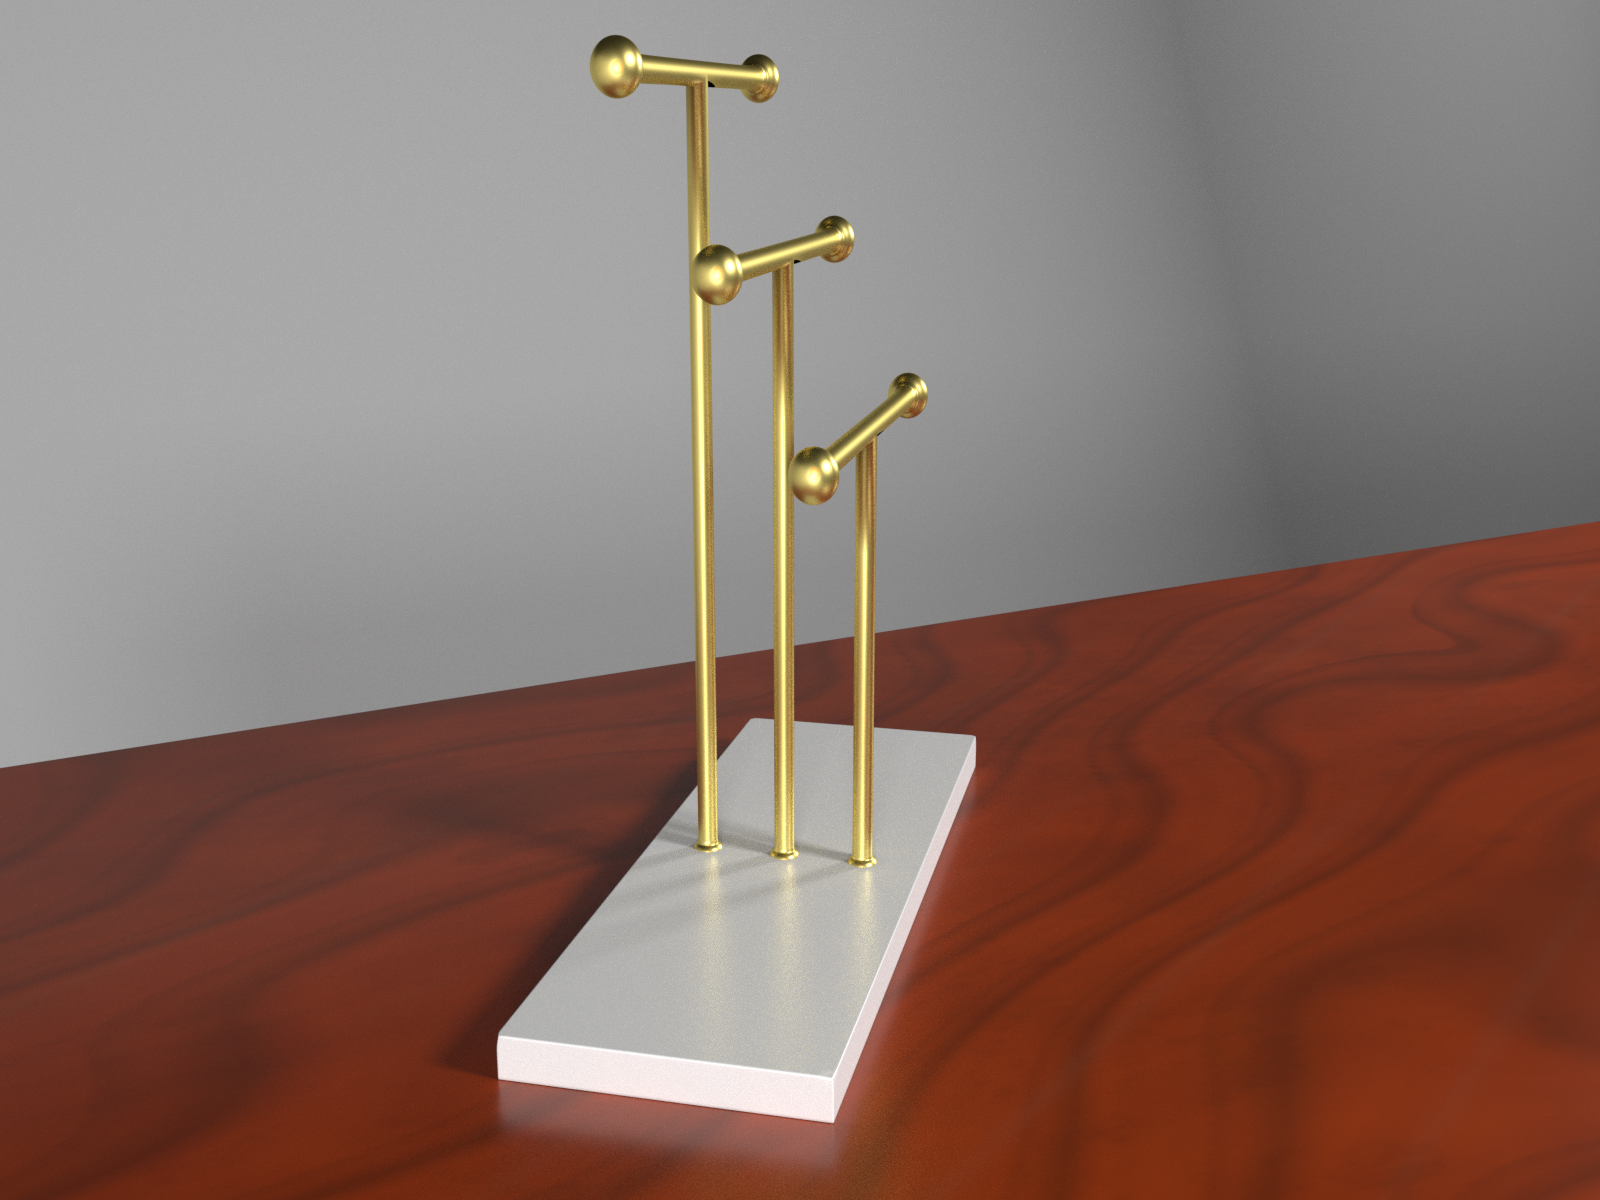 Golden jewelry holder on mahogany desk preview image 2